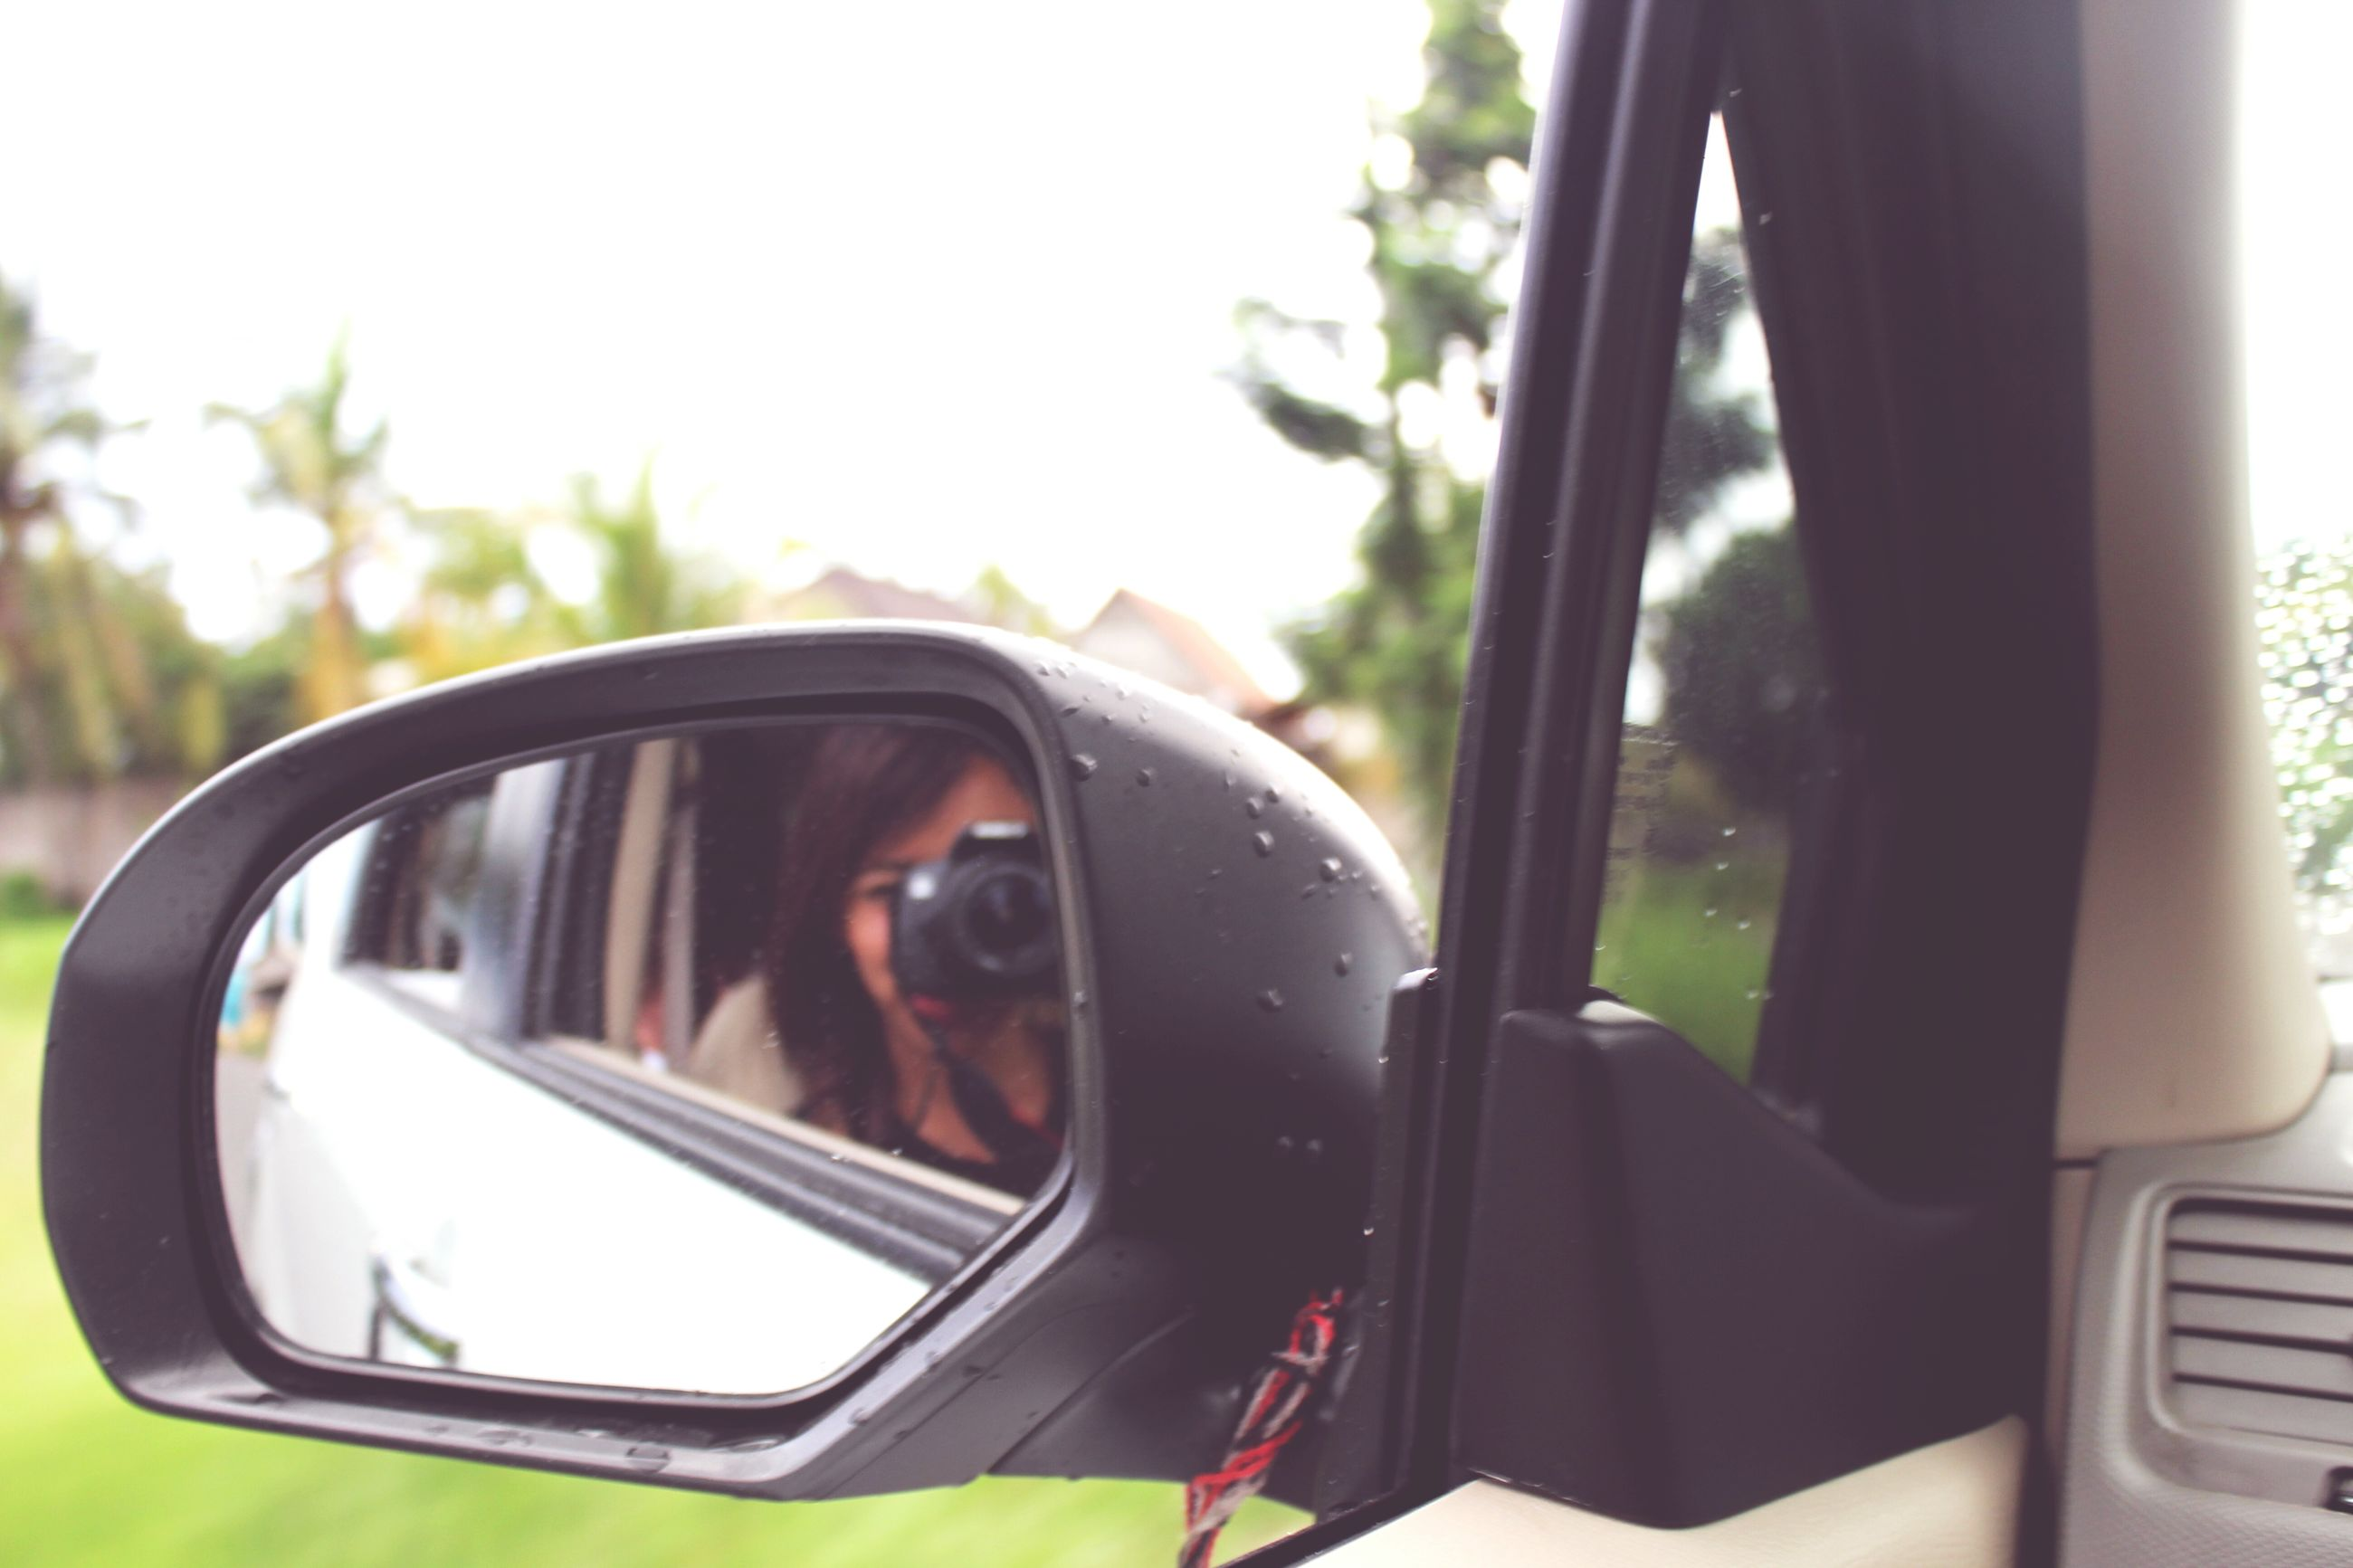 transportation, mode of transport, car, land vehicle, vehicle interior, side-view mirror, car interior, glass - material, reflection, transparent, close-up, window, part of, travel, windshield, rear-view mirror, steering wheel, cropped, driving, dashboard